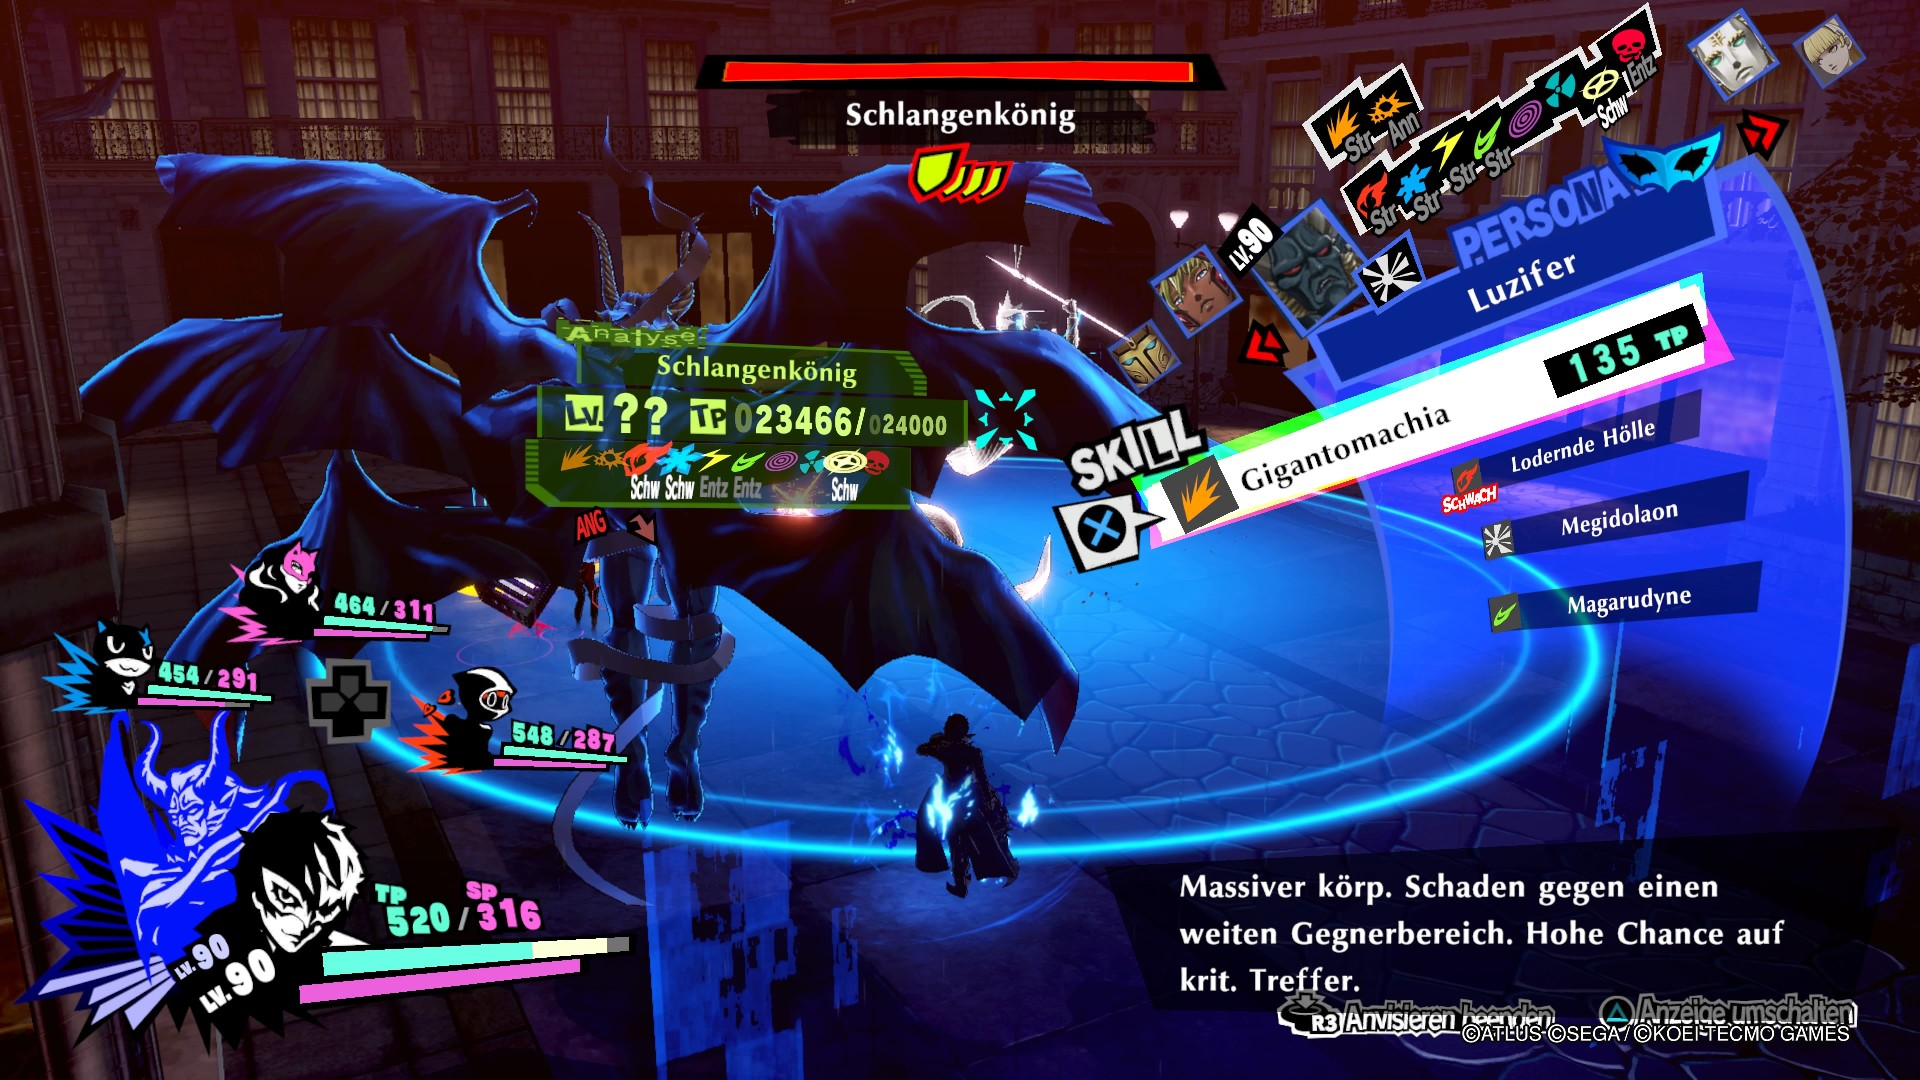 Persona 5 Strikers Dire Shadow Düstershatten Sendai PS4 RPG JRPG Guide Schlangenkönig